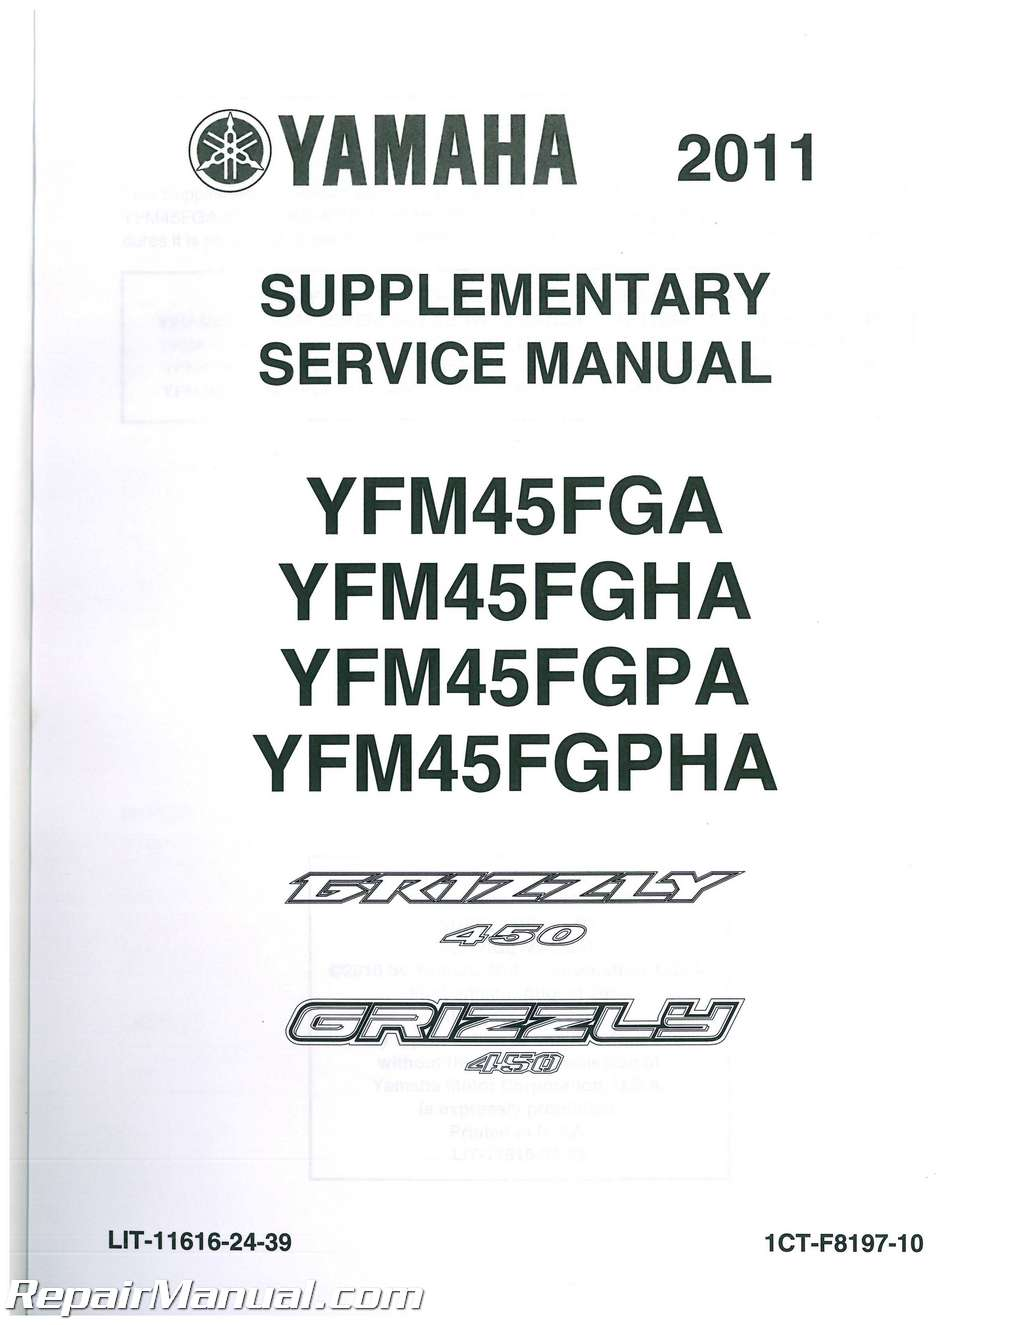 2014 Grizzly 450 Wiring Diagram Trusted Diagrams Arctic Cat 600 Efi Yamaha Enthusiast U2022